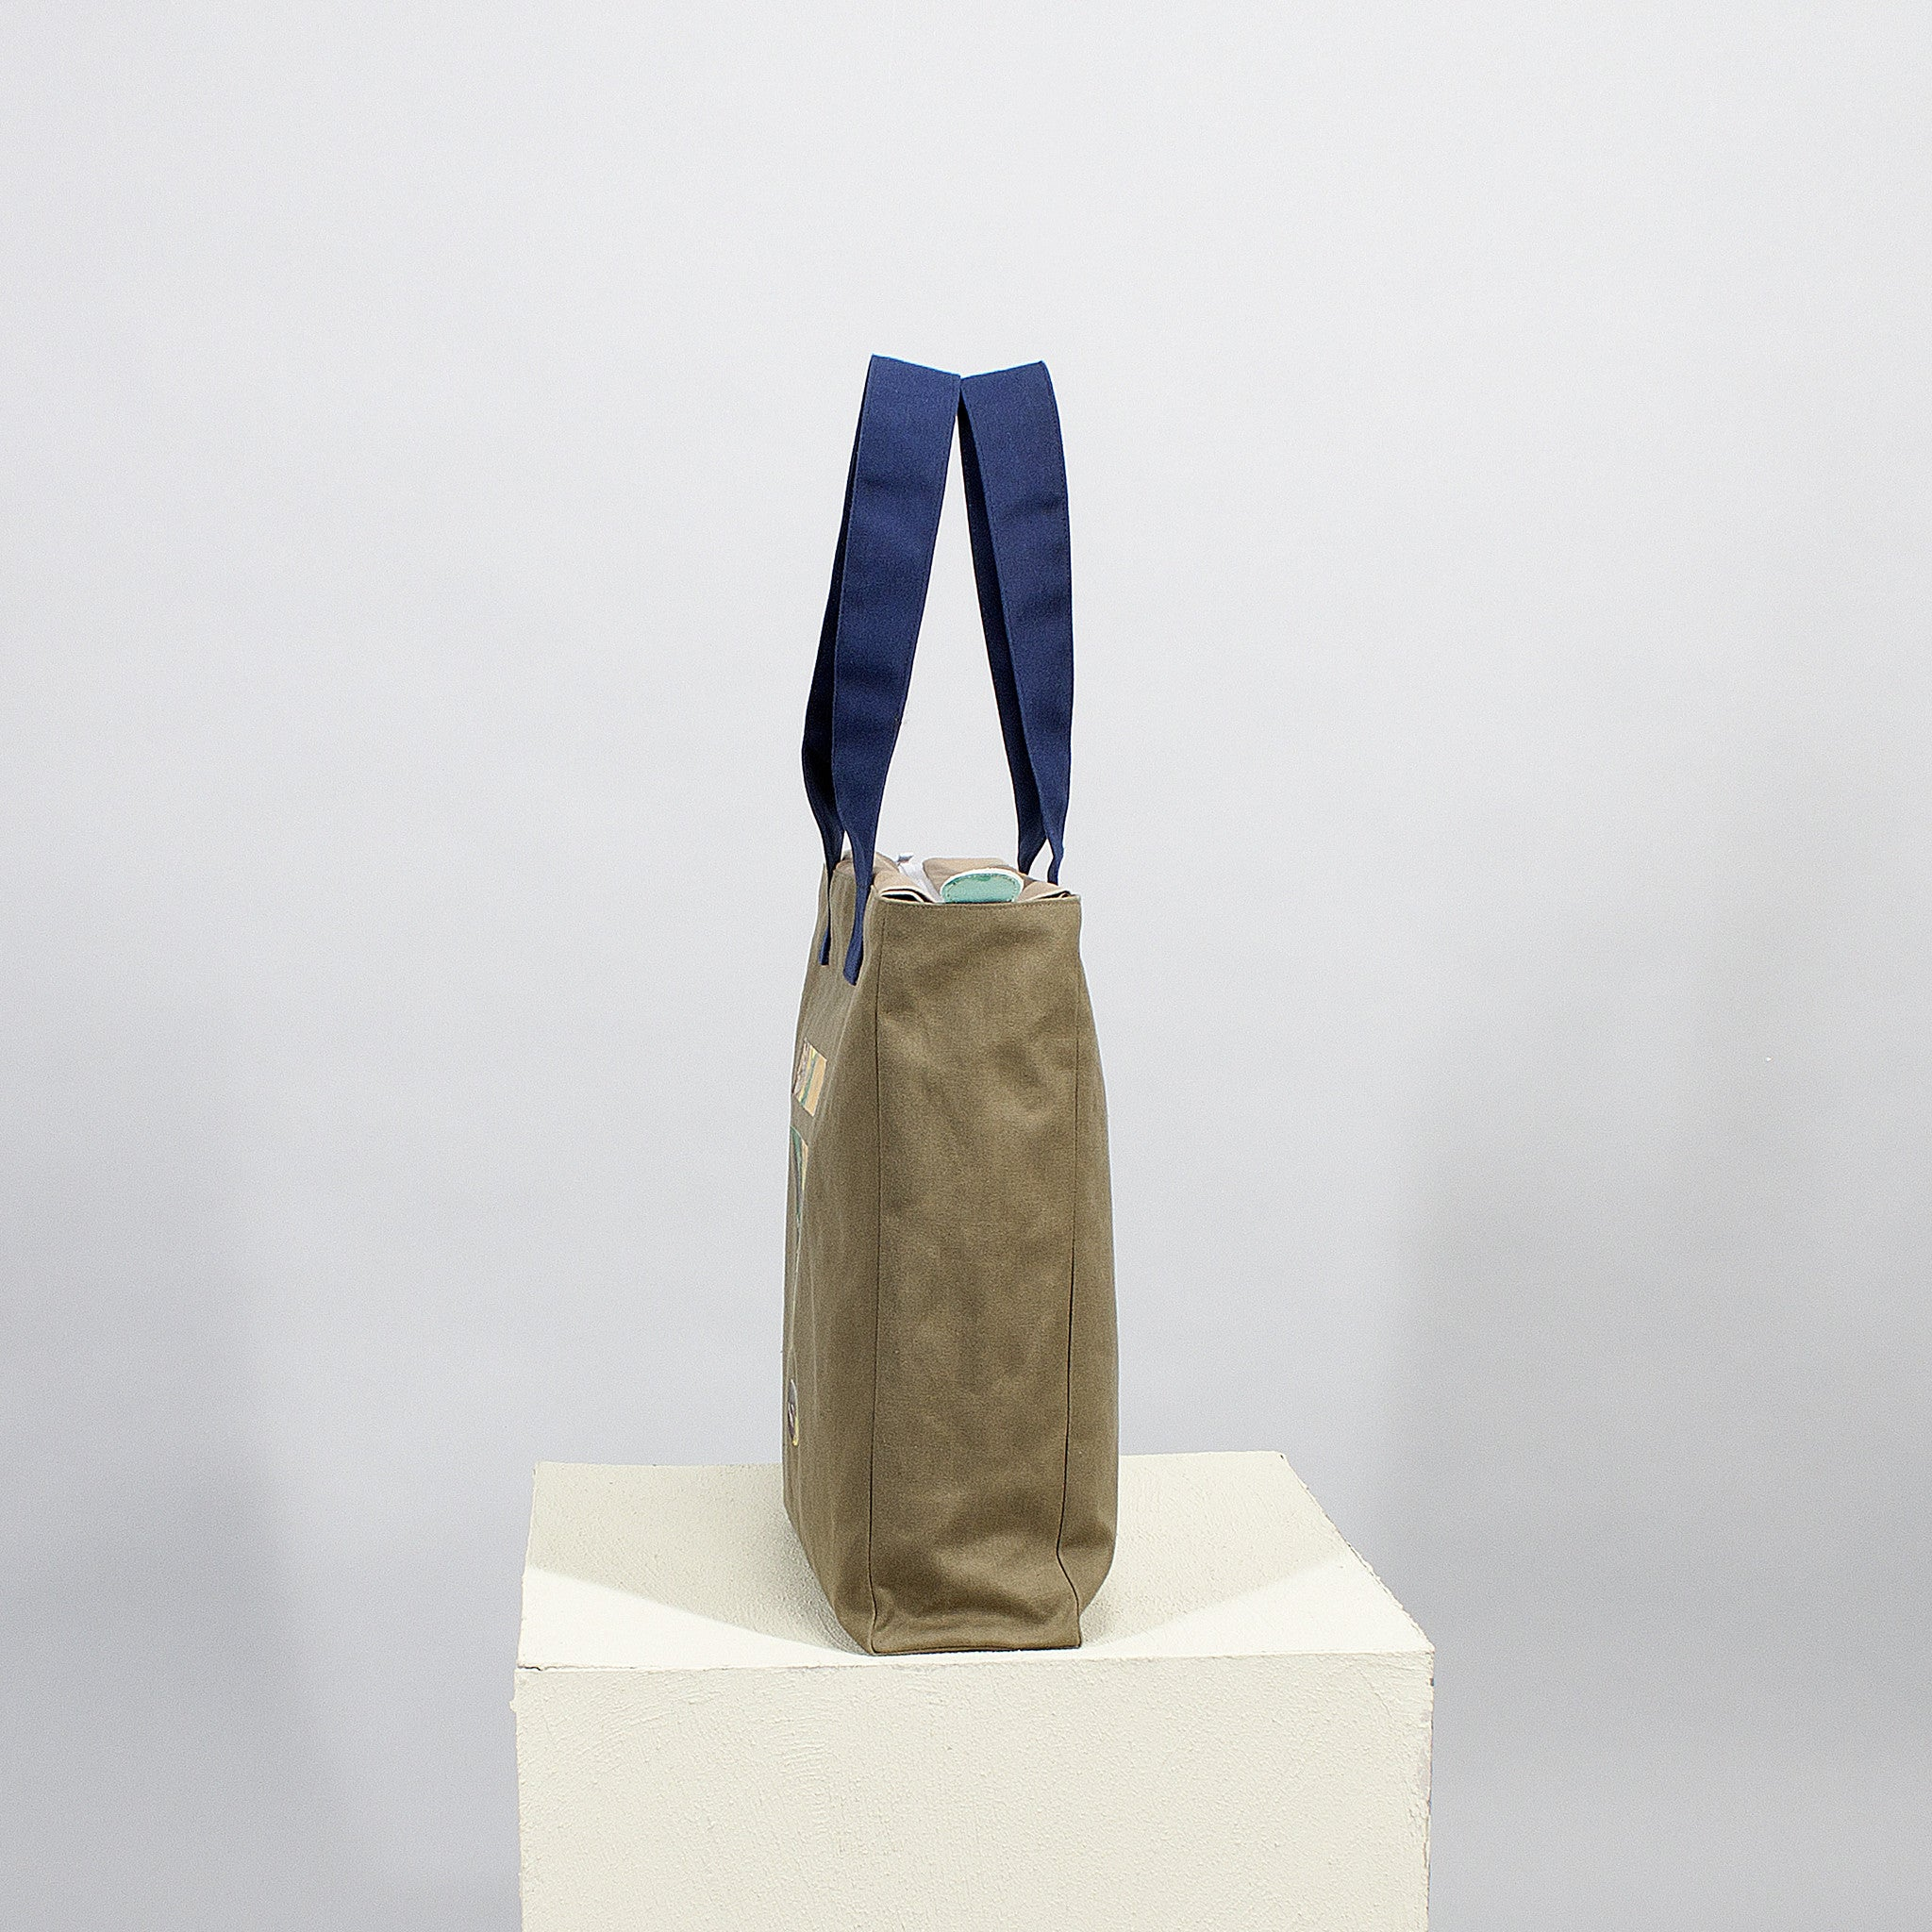 'Cut out' square tote - olive